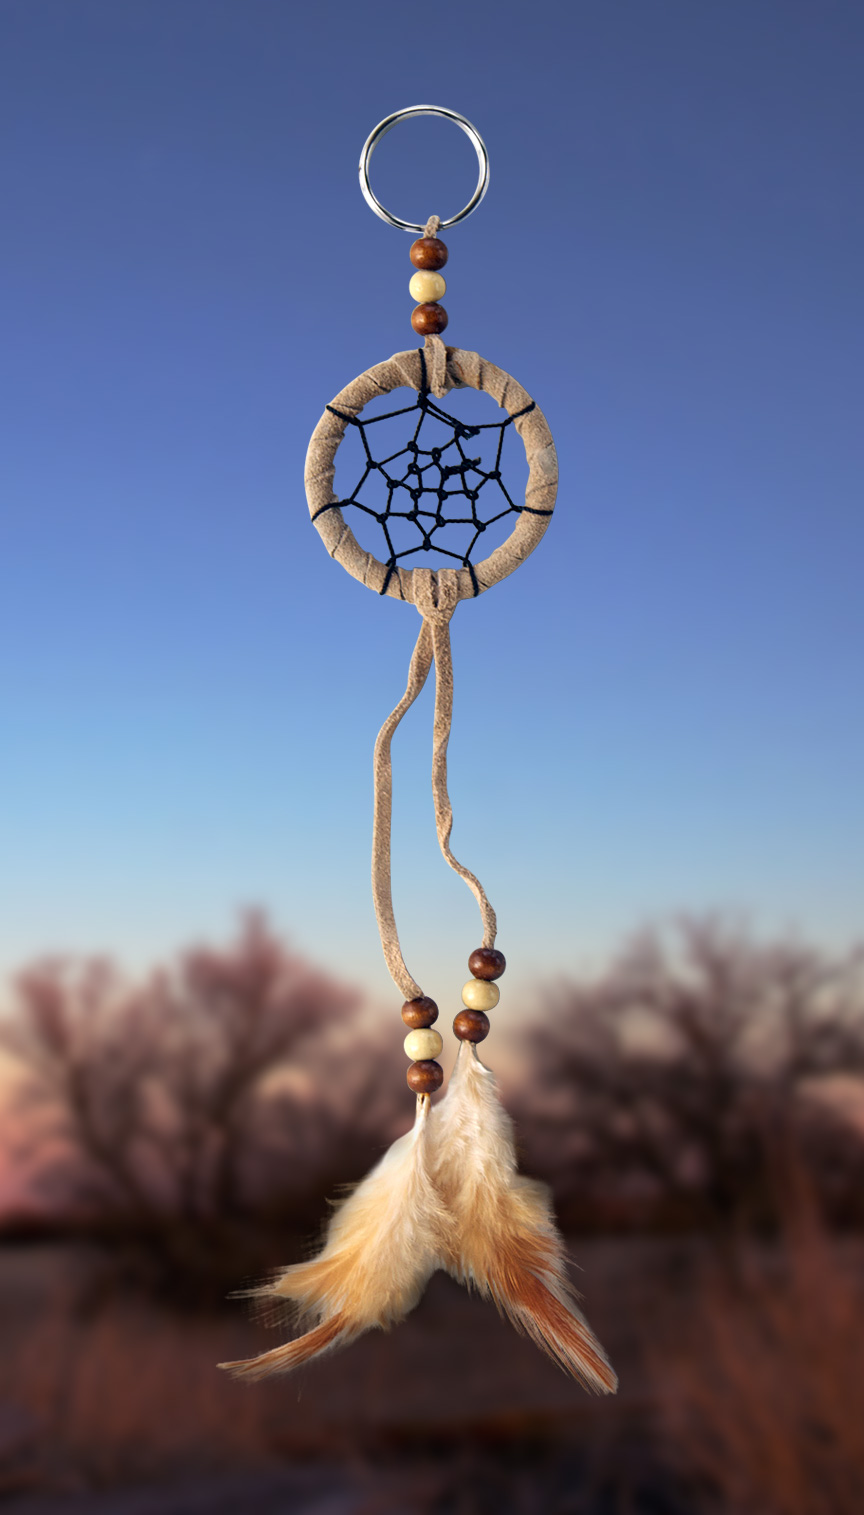 Shows an image of dreamcatcher owg008 on a scenic background